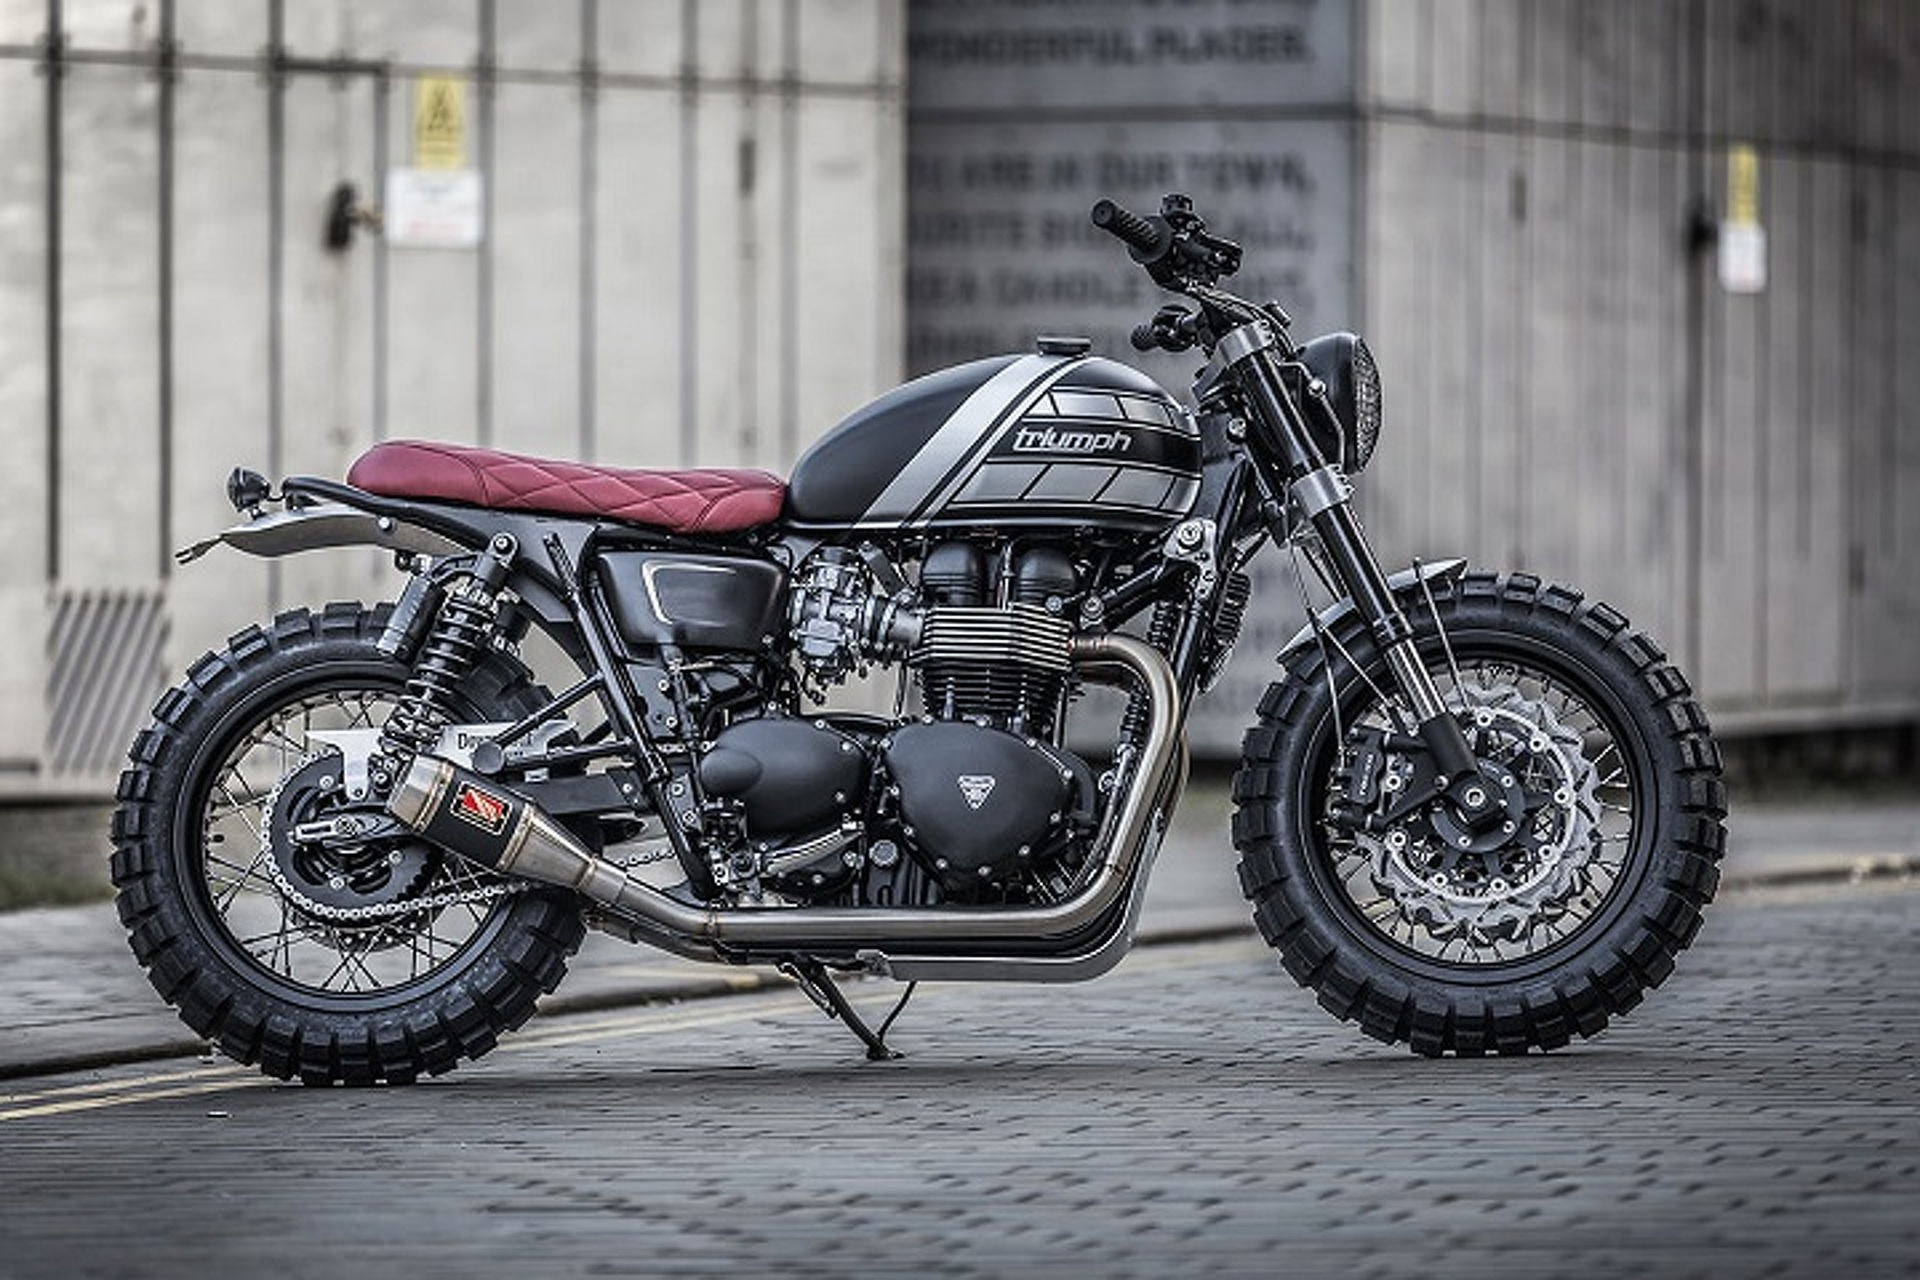 This Custom Triumph Bonneville T100 Got a Mean Makeover